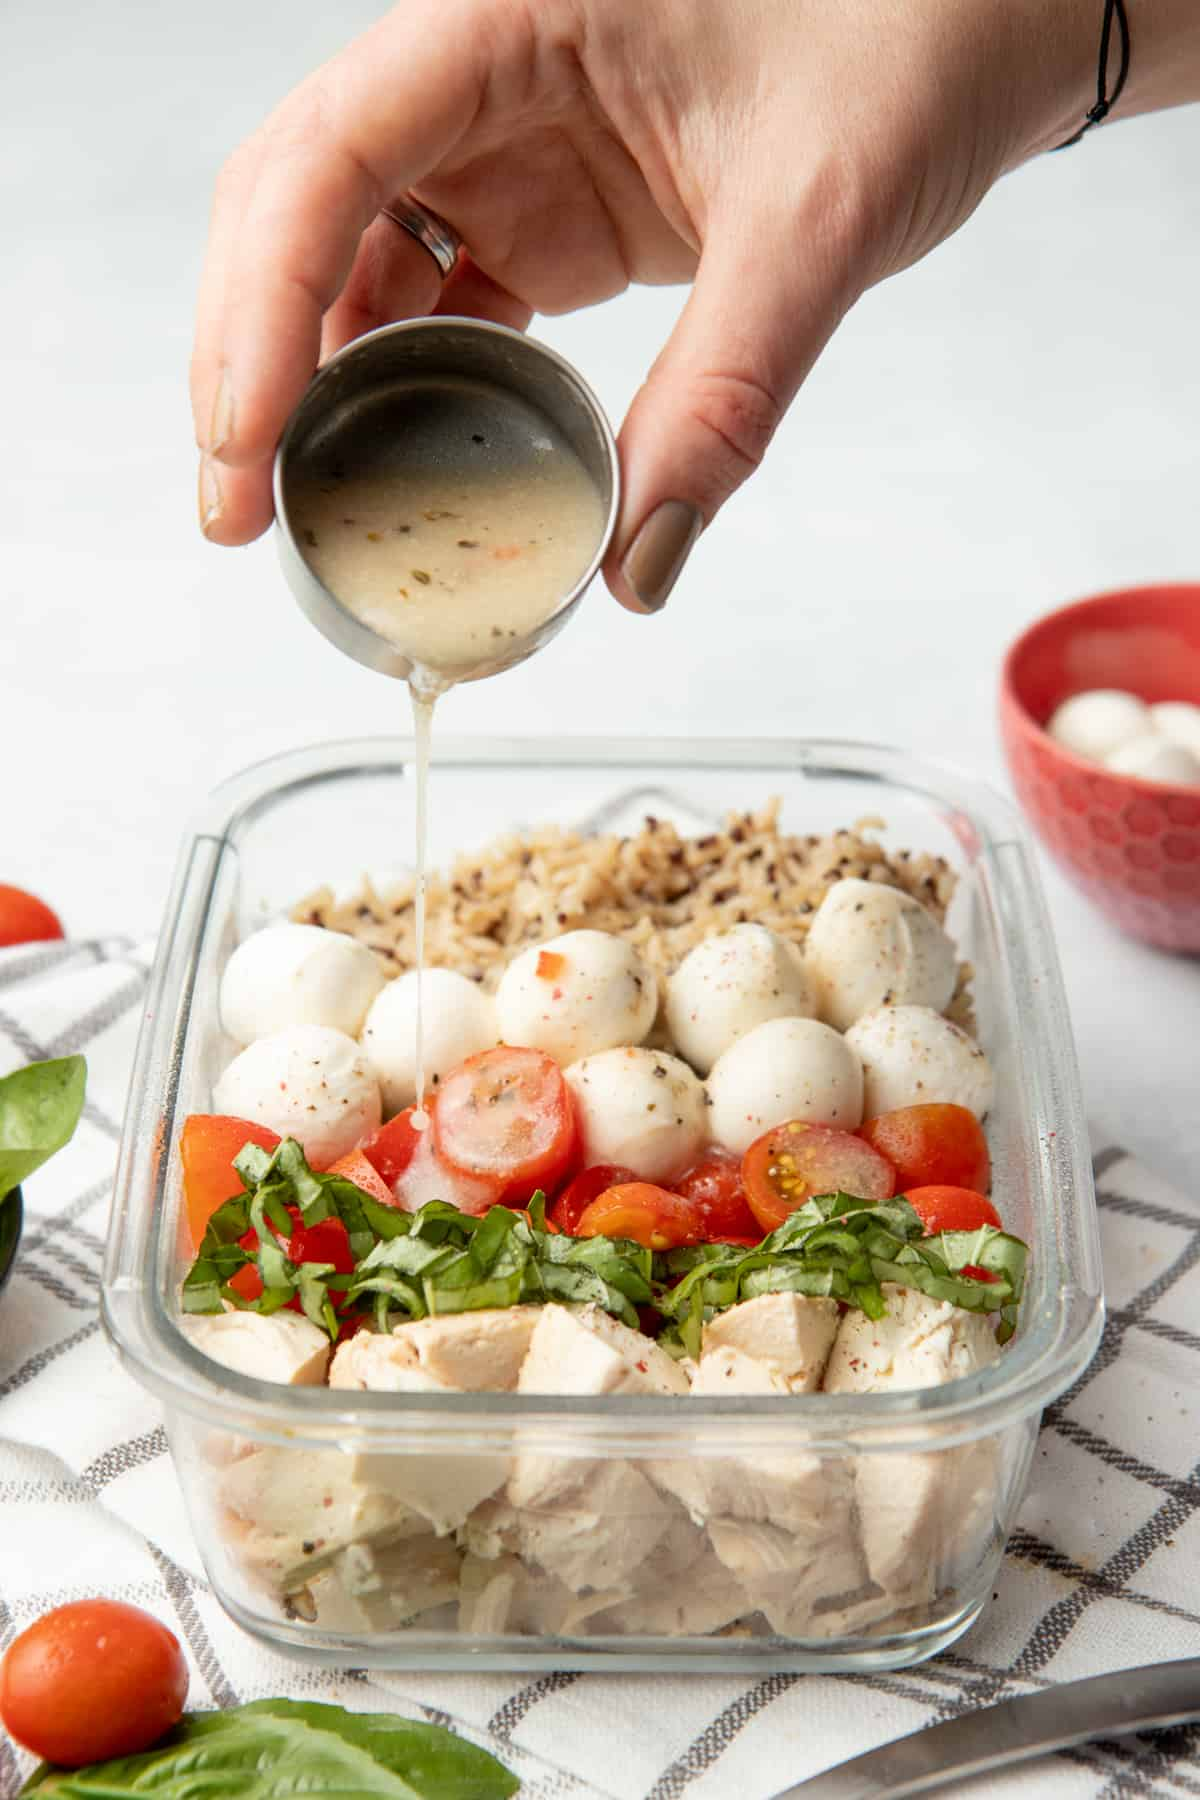 A hand pours dressing over a glass container of chicken, basil, tomatoes, cheese, and grains.